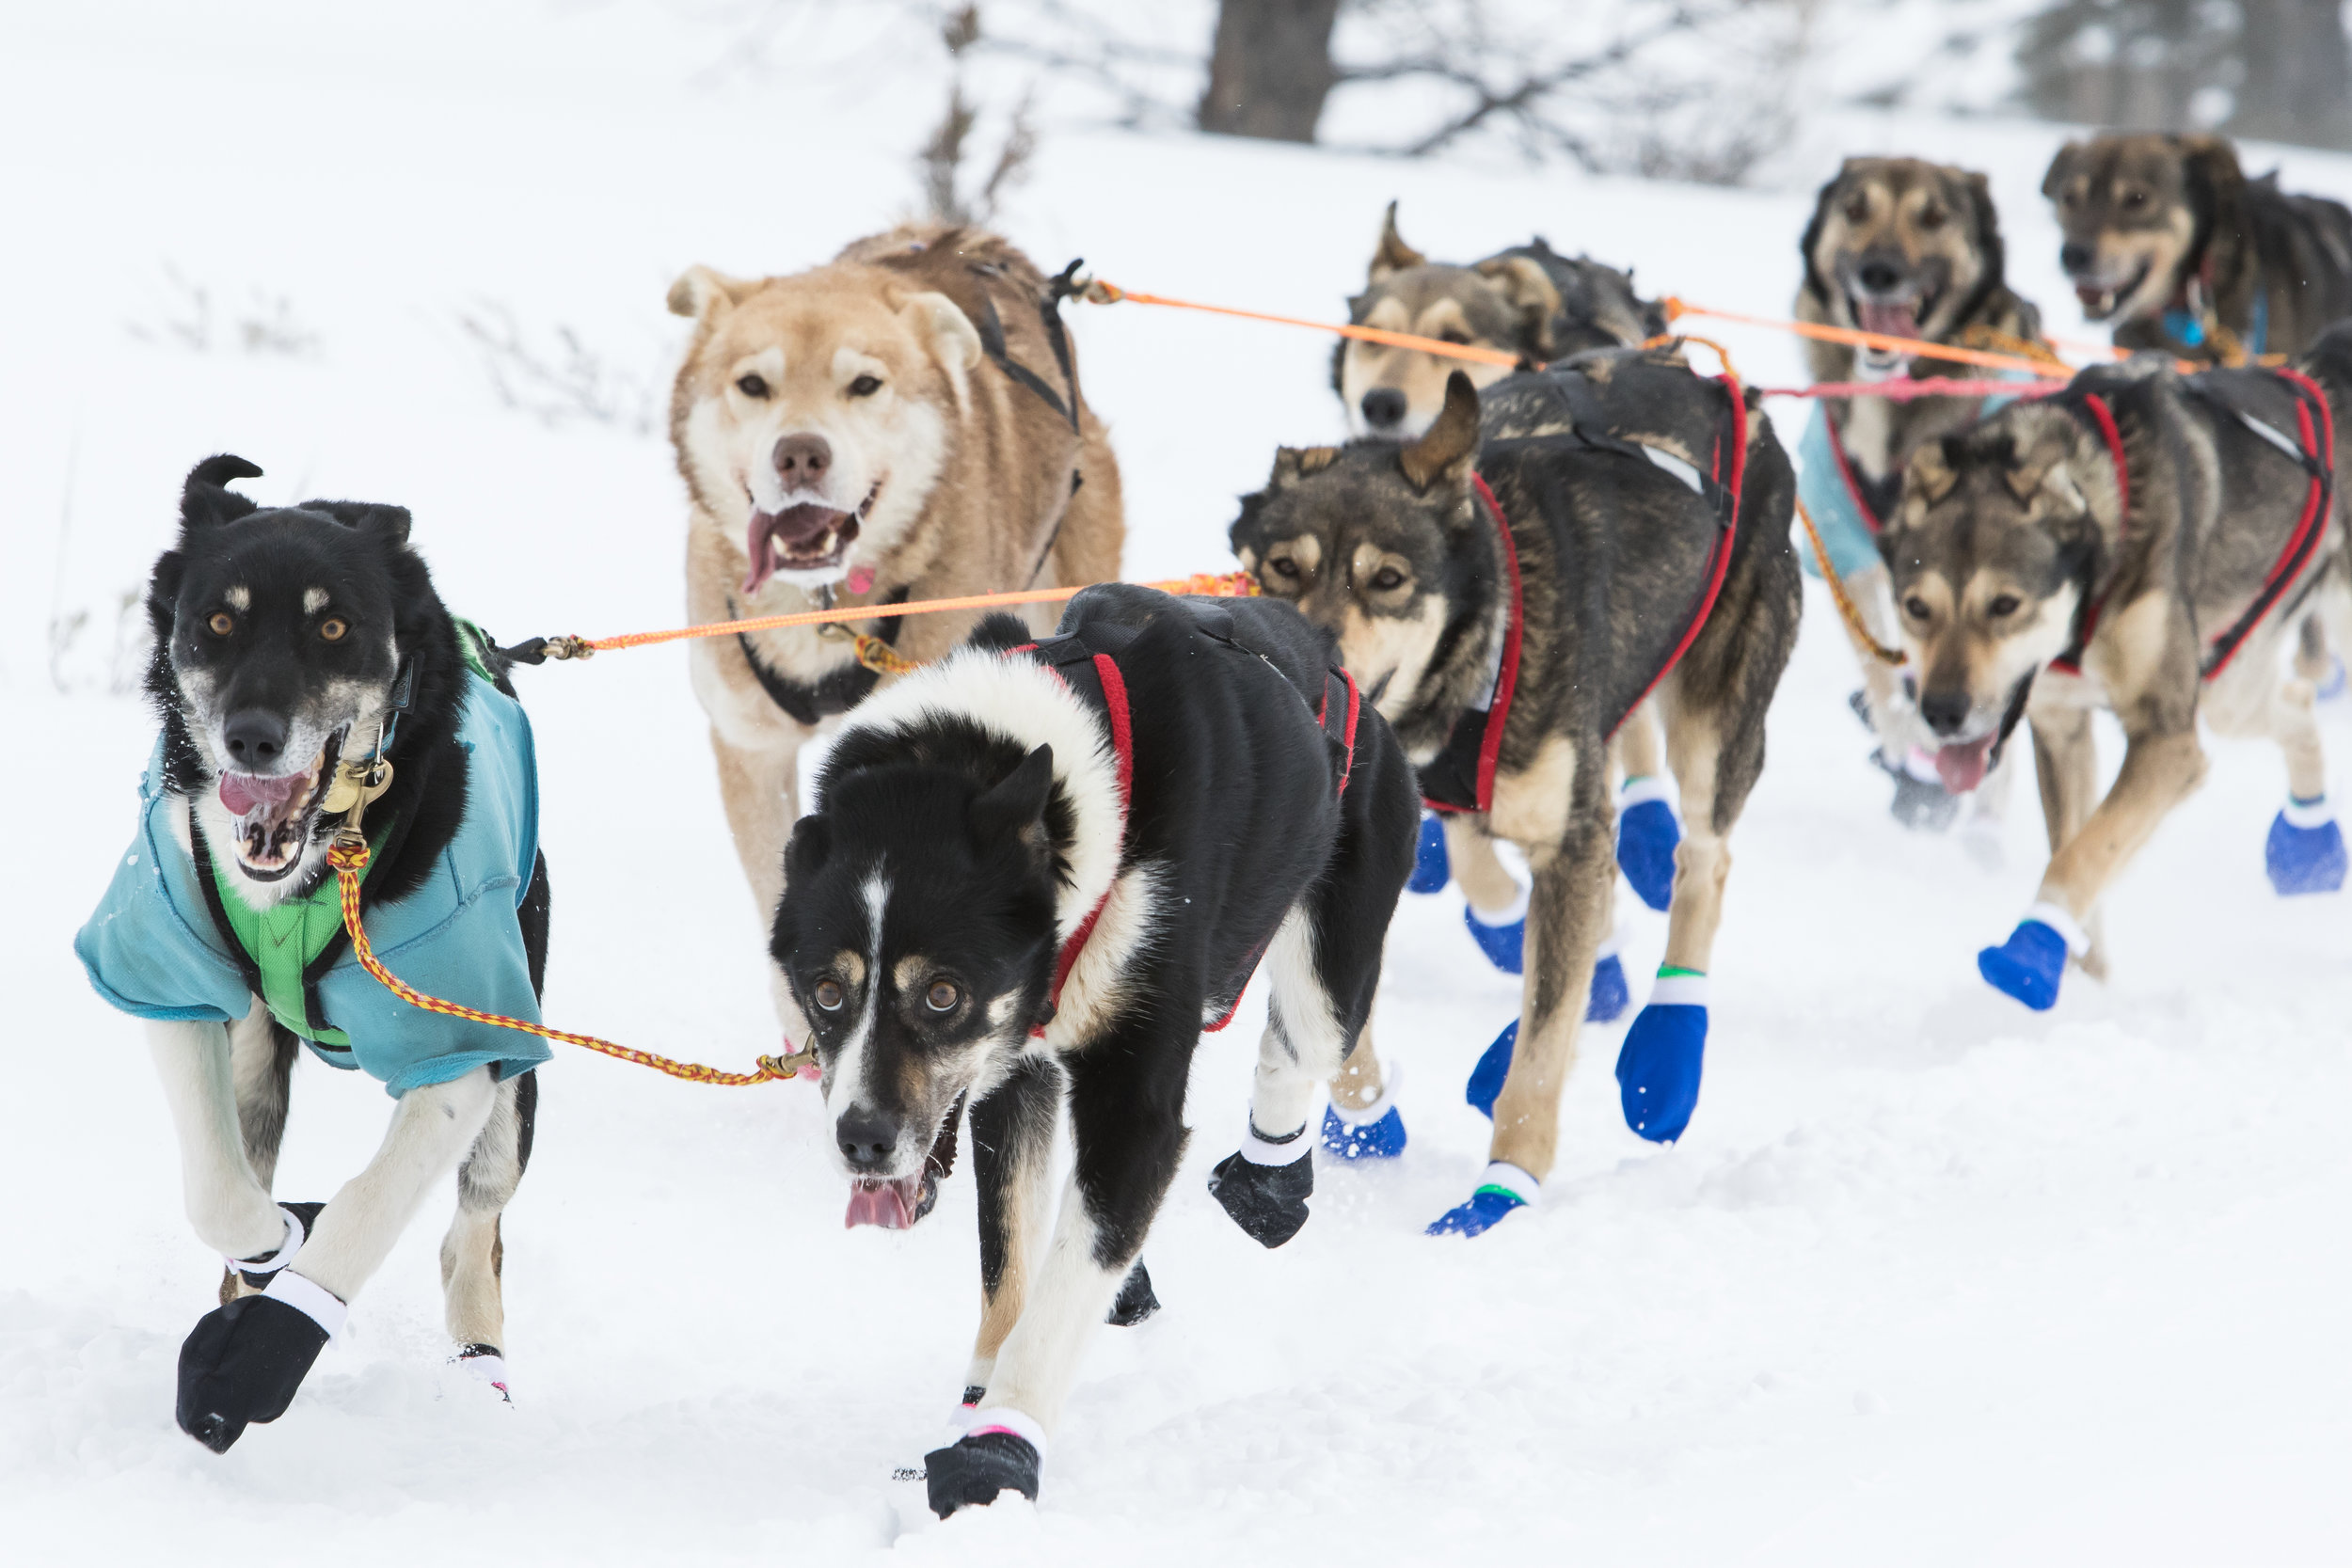 Sled dogs run through the snow at the beginning of the race.